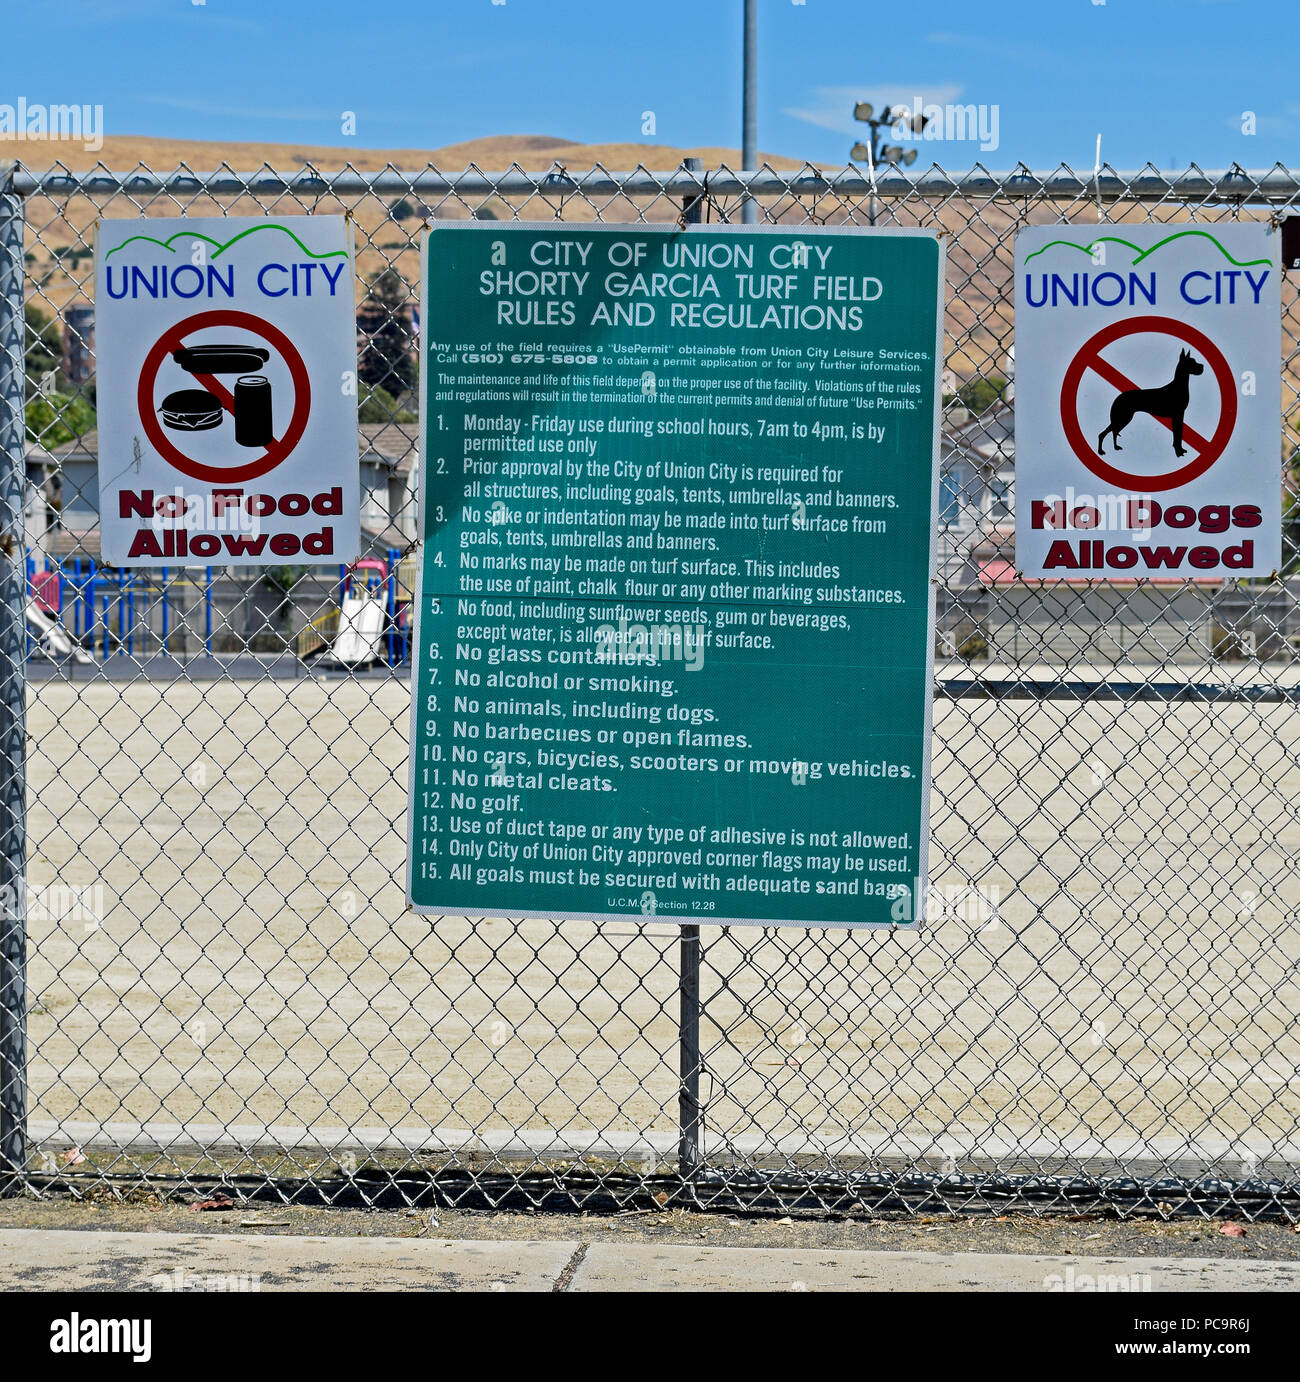 Shorty Garcia Turf Field rules and regulations signs, Union City, California - Stock Image